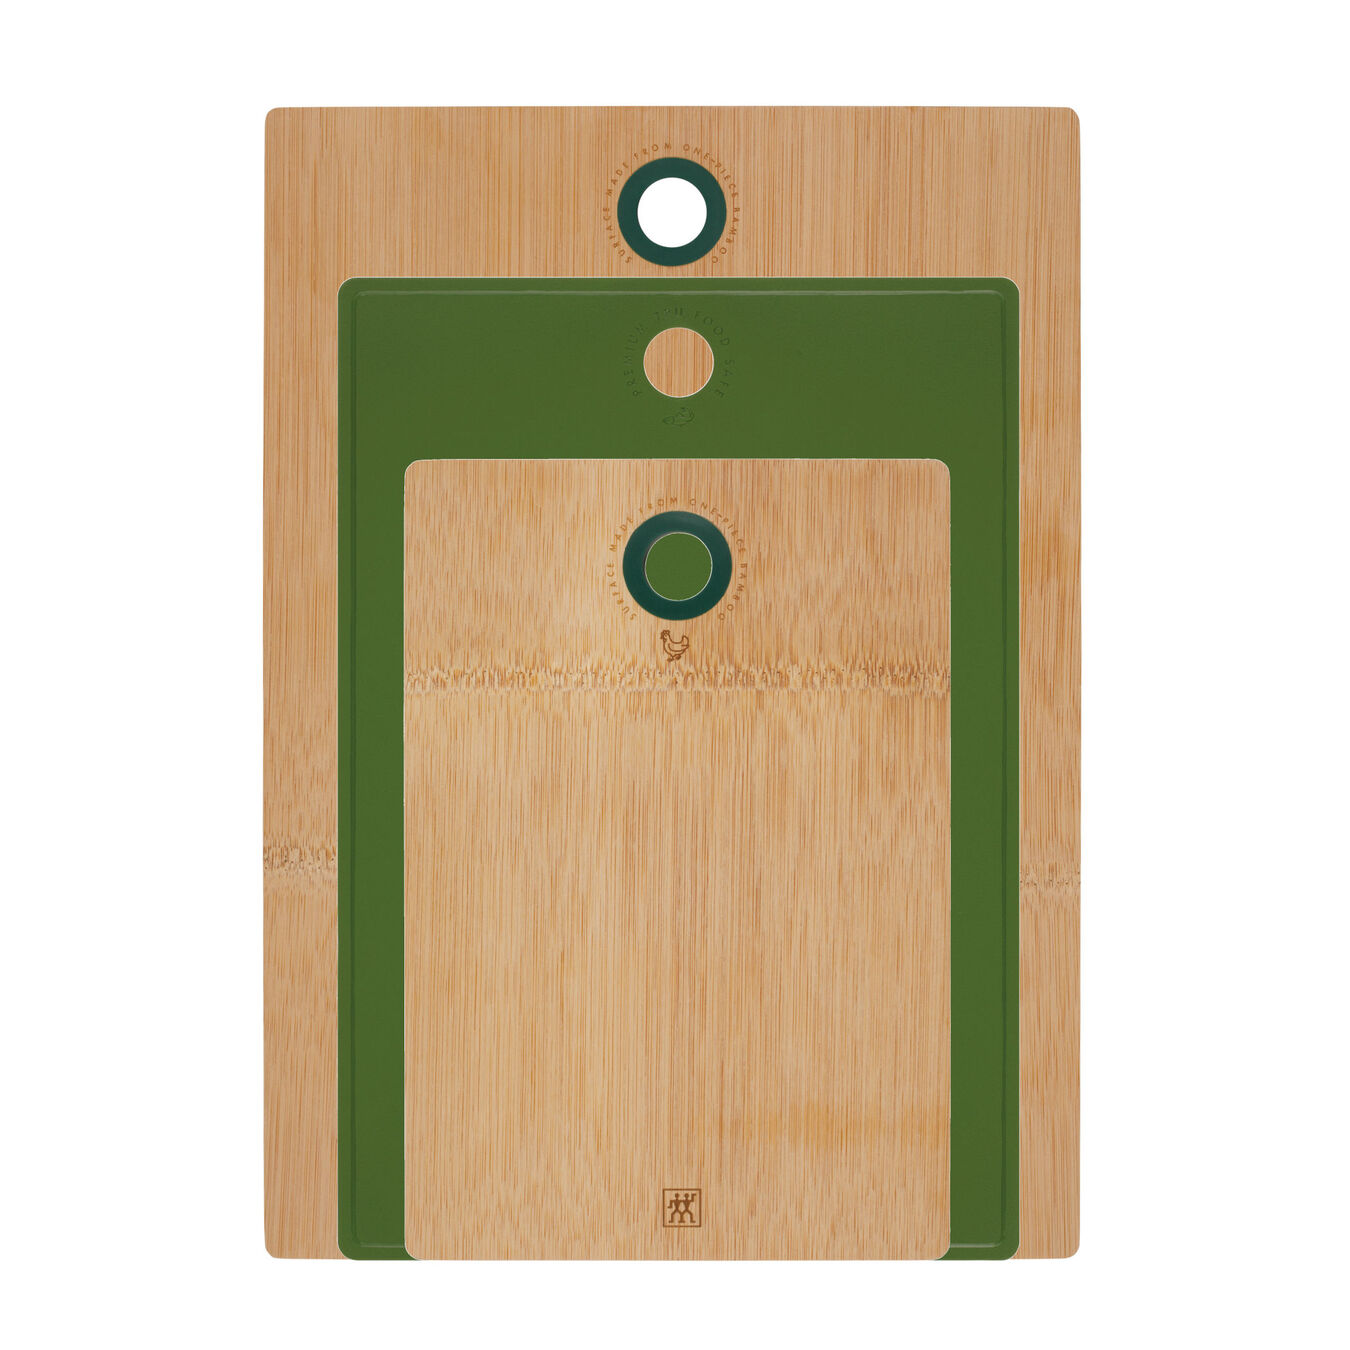 Cutting board set, 3 Piece | bamboo | lime-green,,large 1